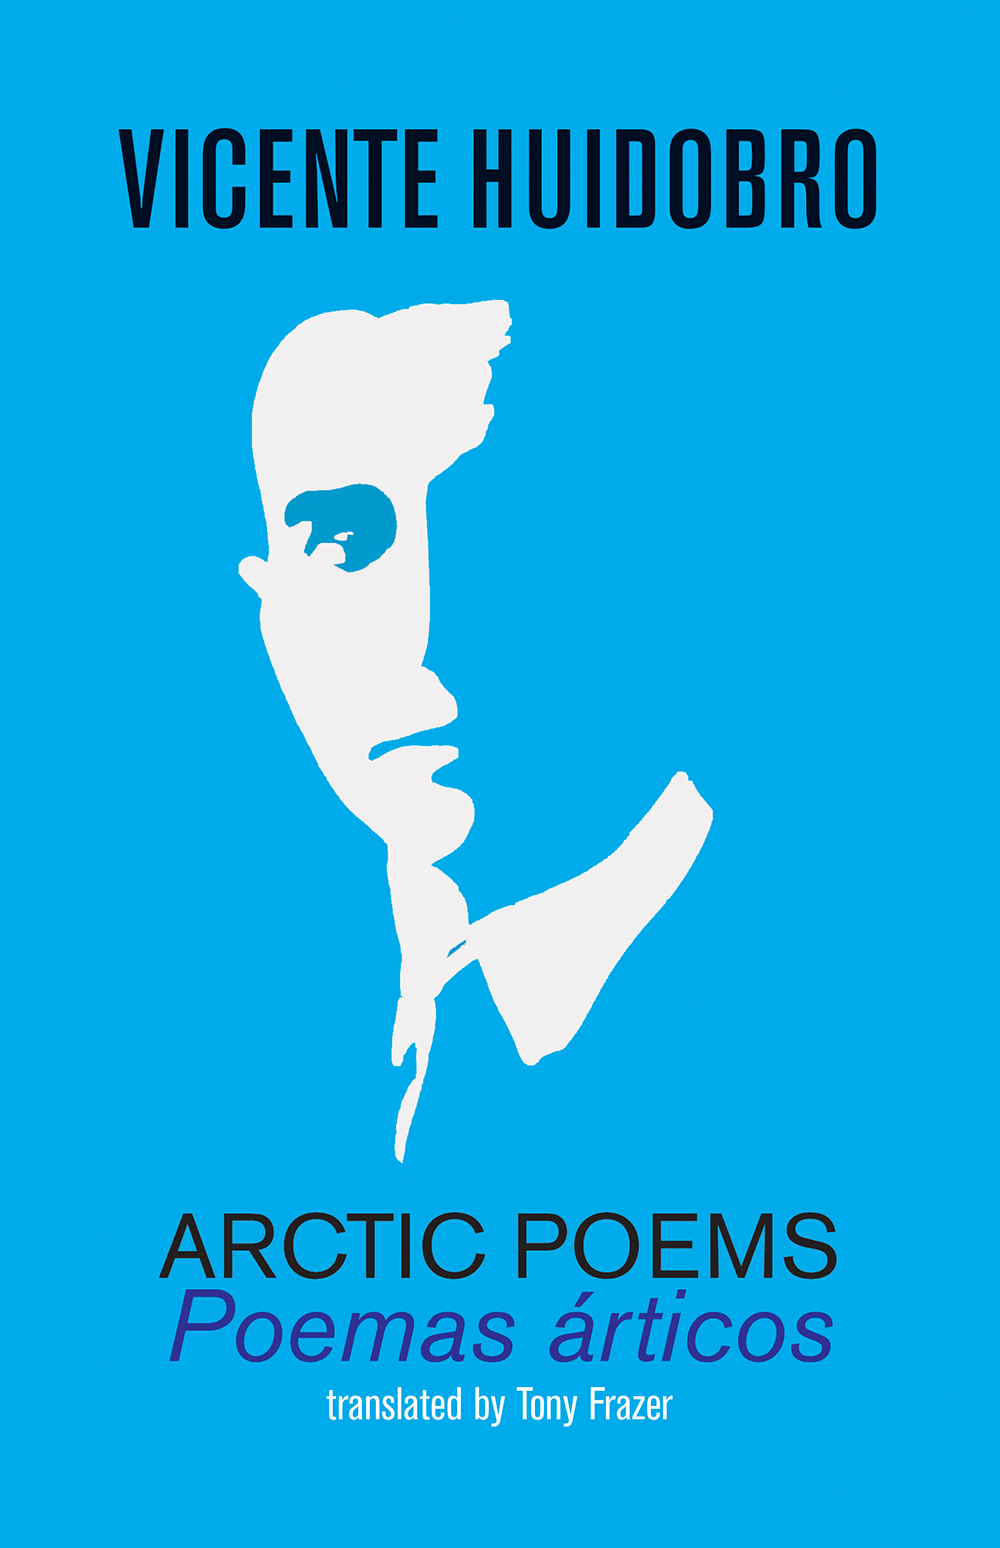 Arctic Poems / Poemas árticos